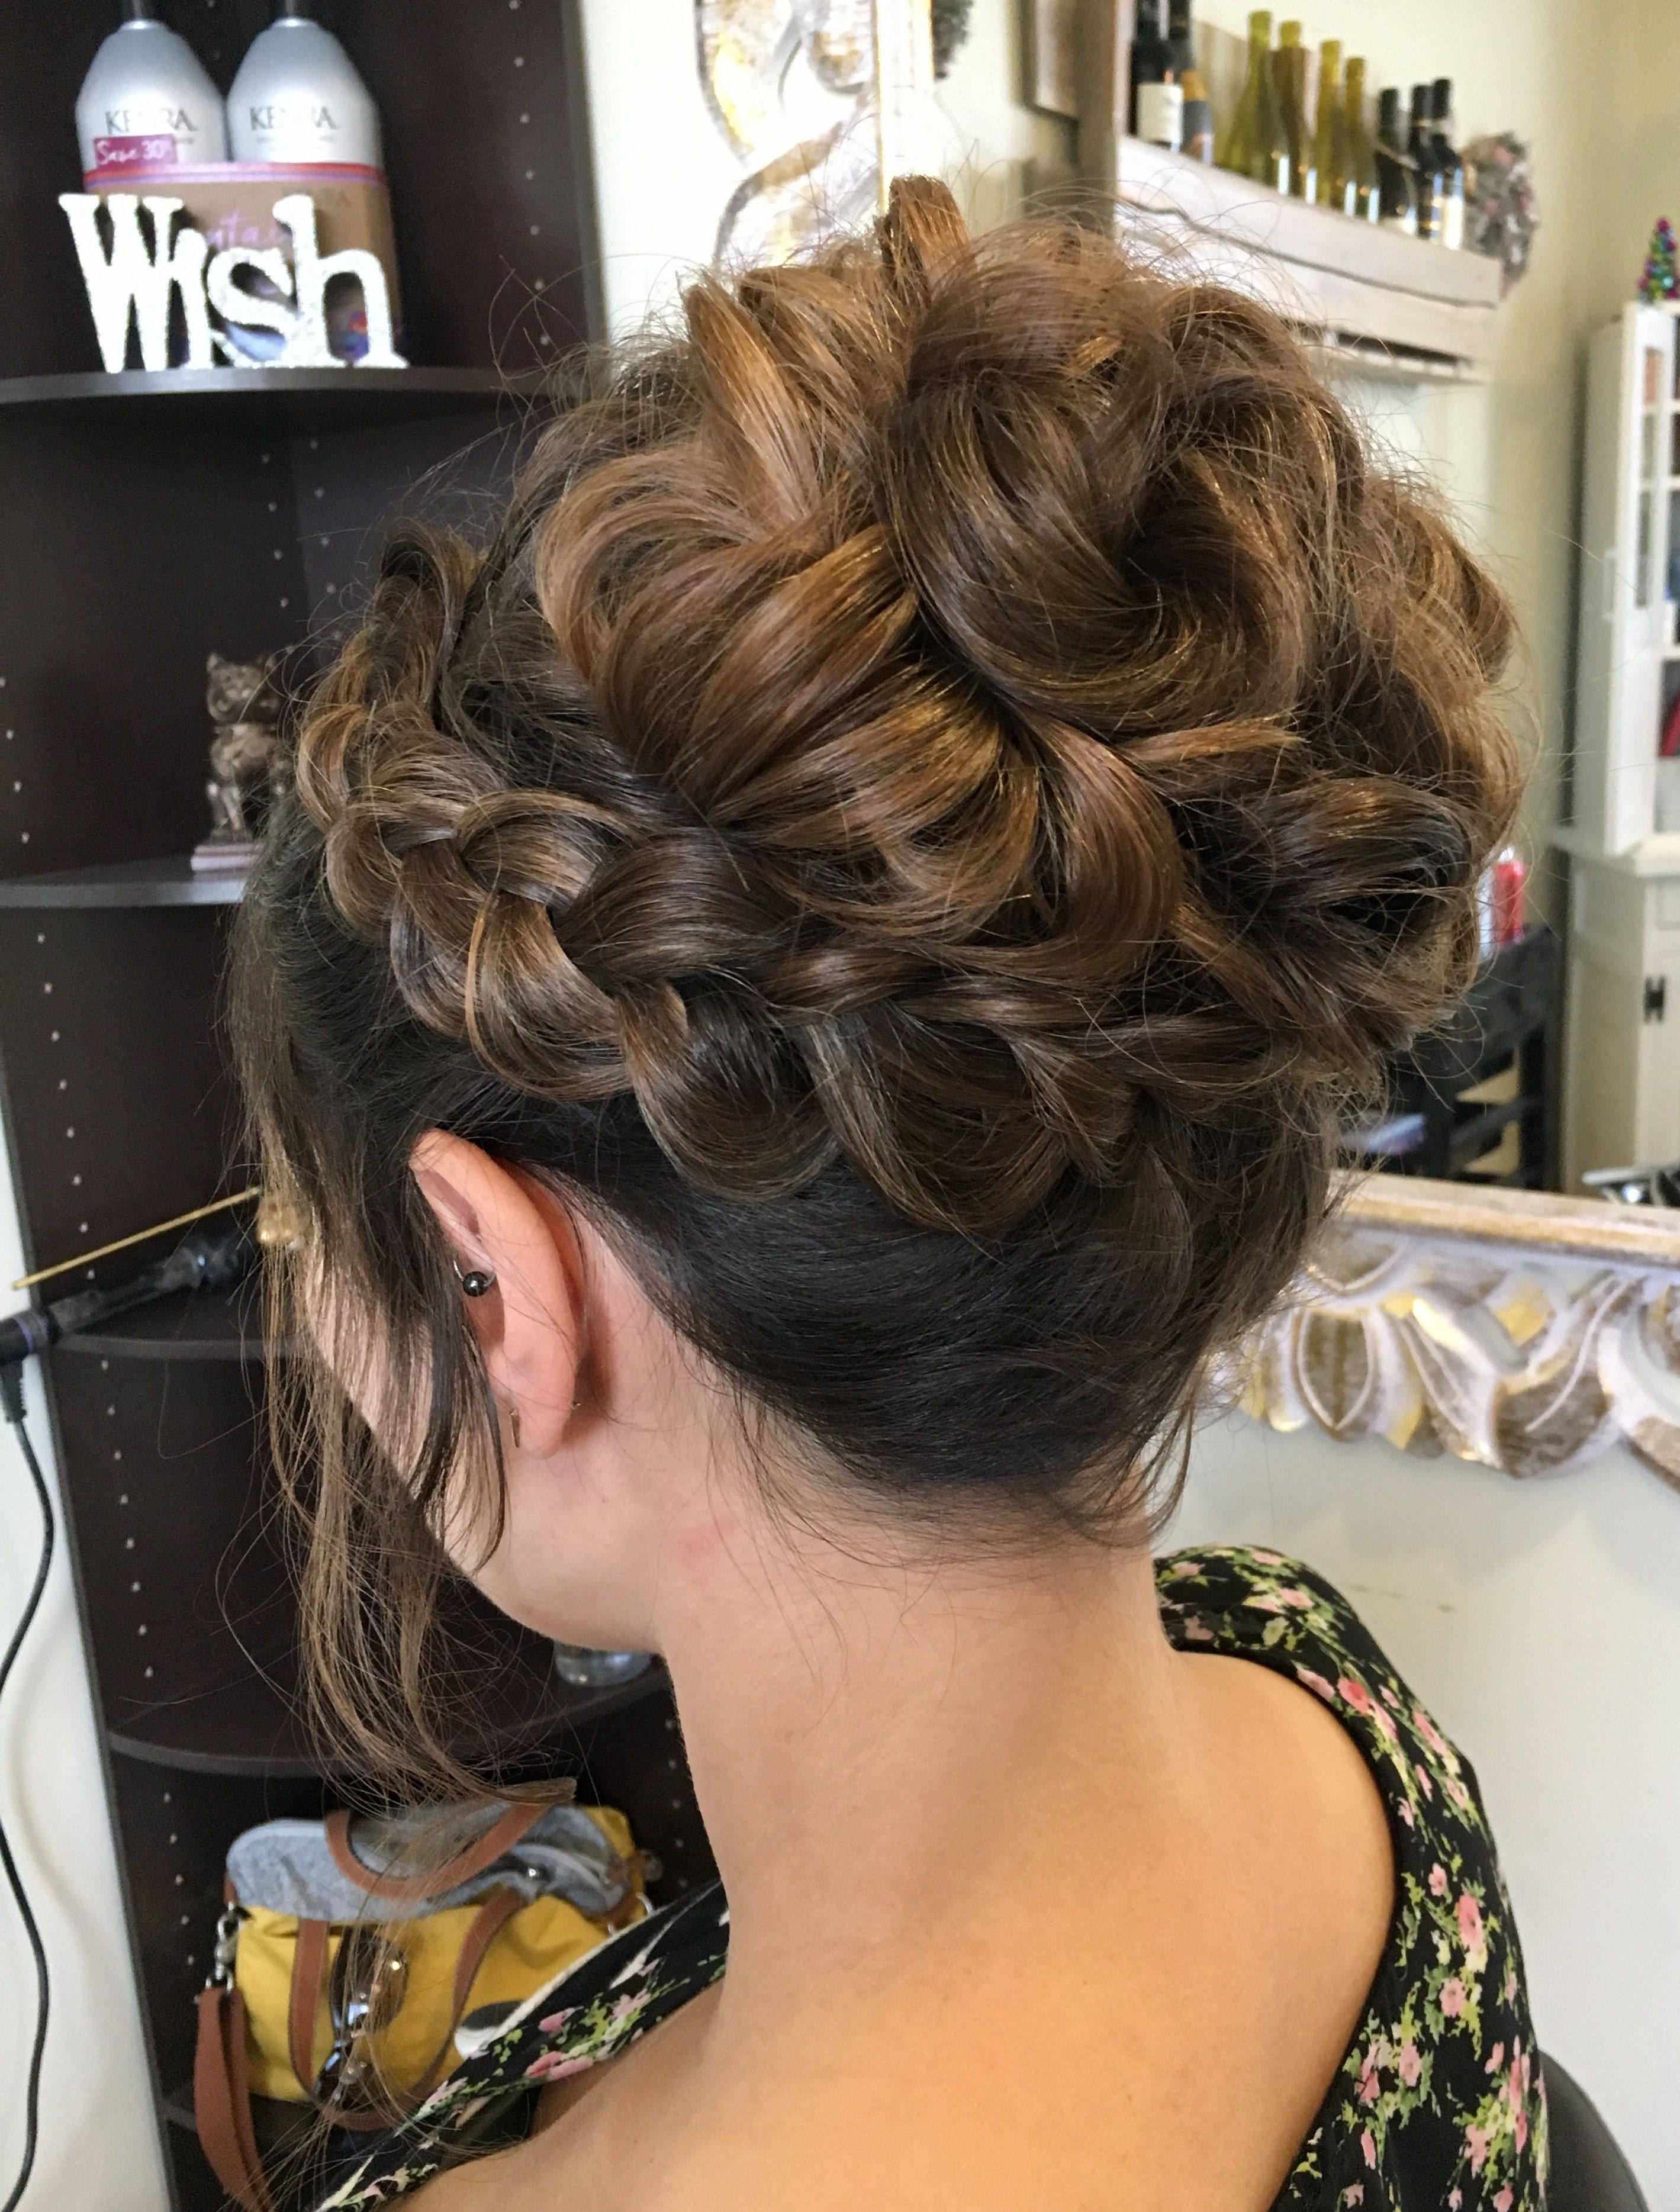 braid with high updo | hairstyles in 2019 | bridal hair updo